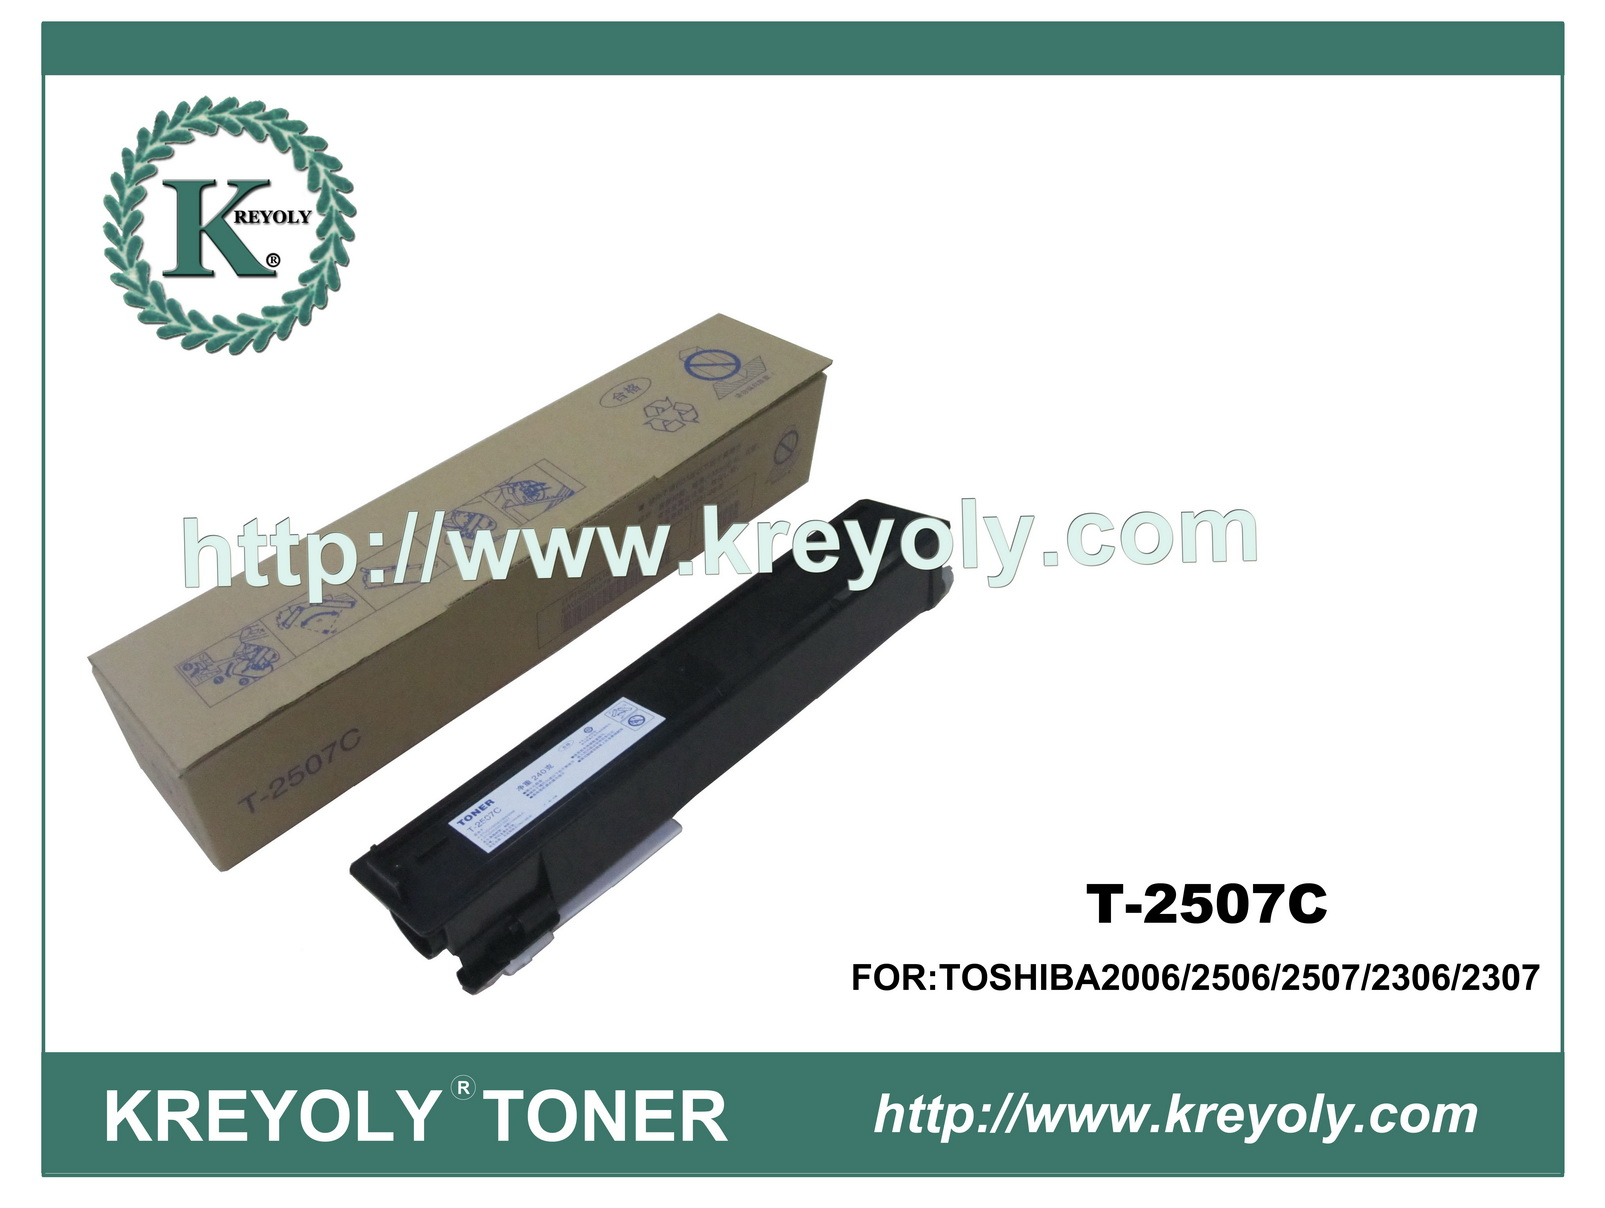 Compatible Toner Cartridge for Toshiba T-2507C